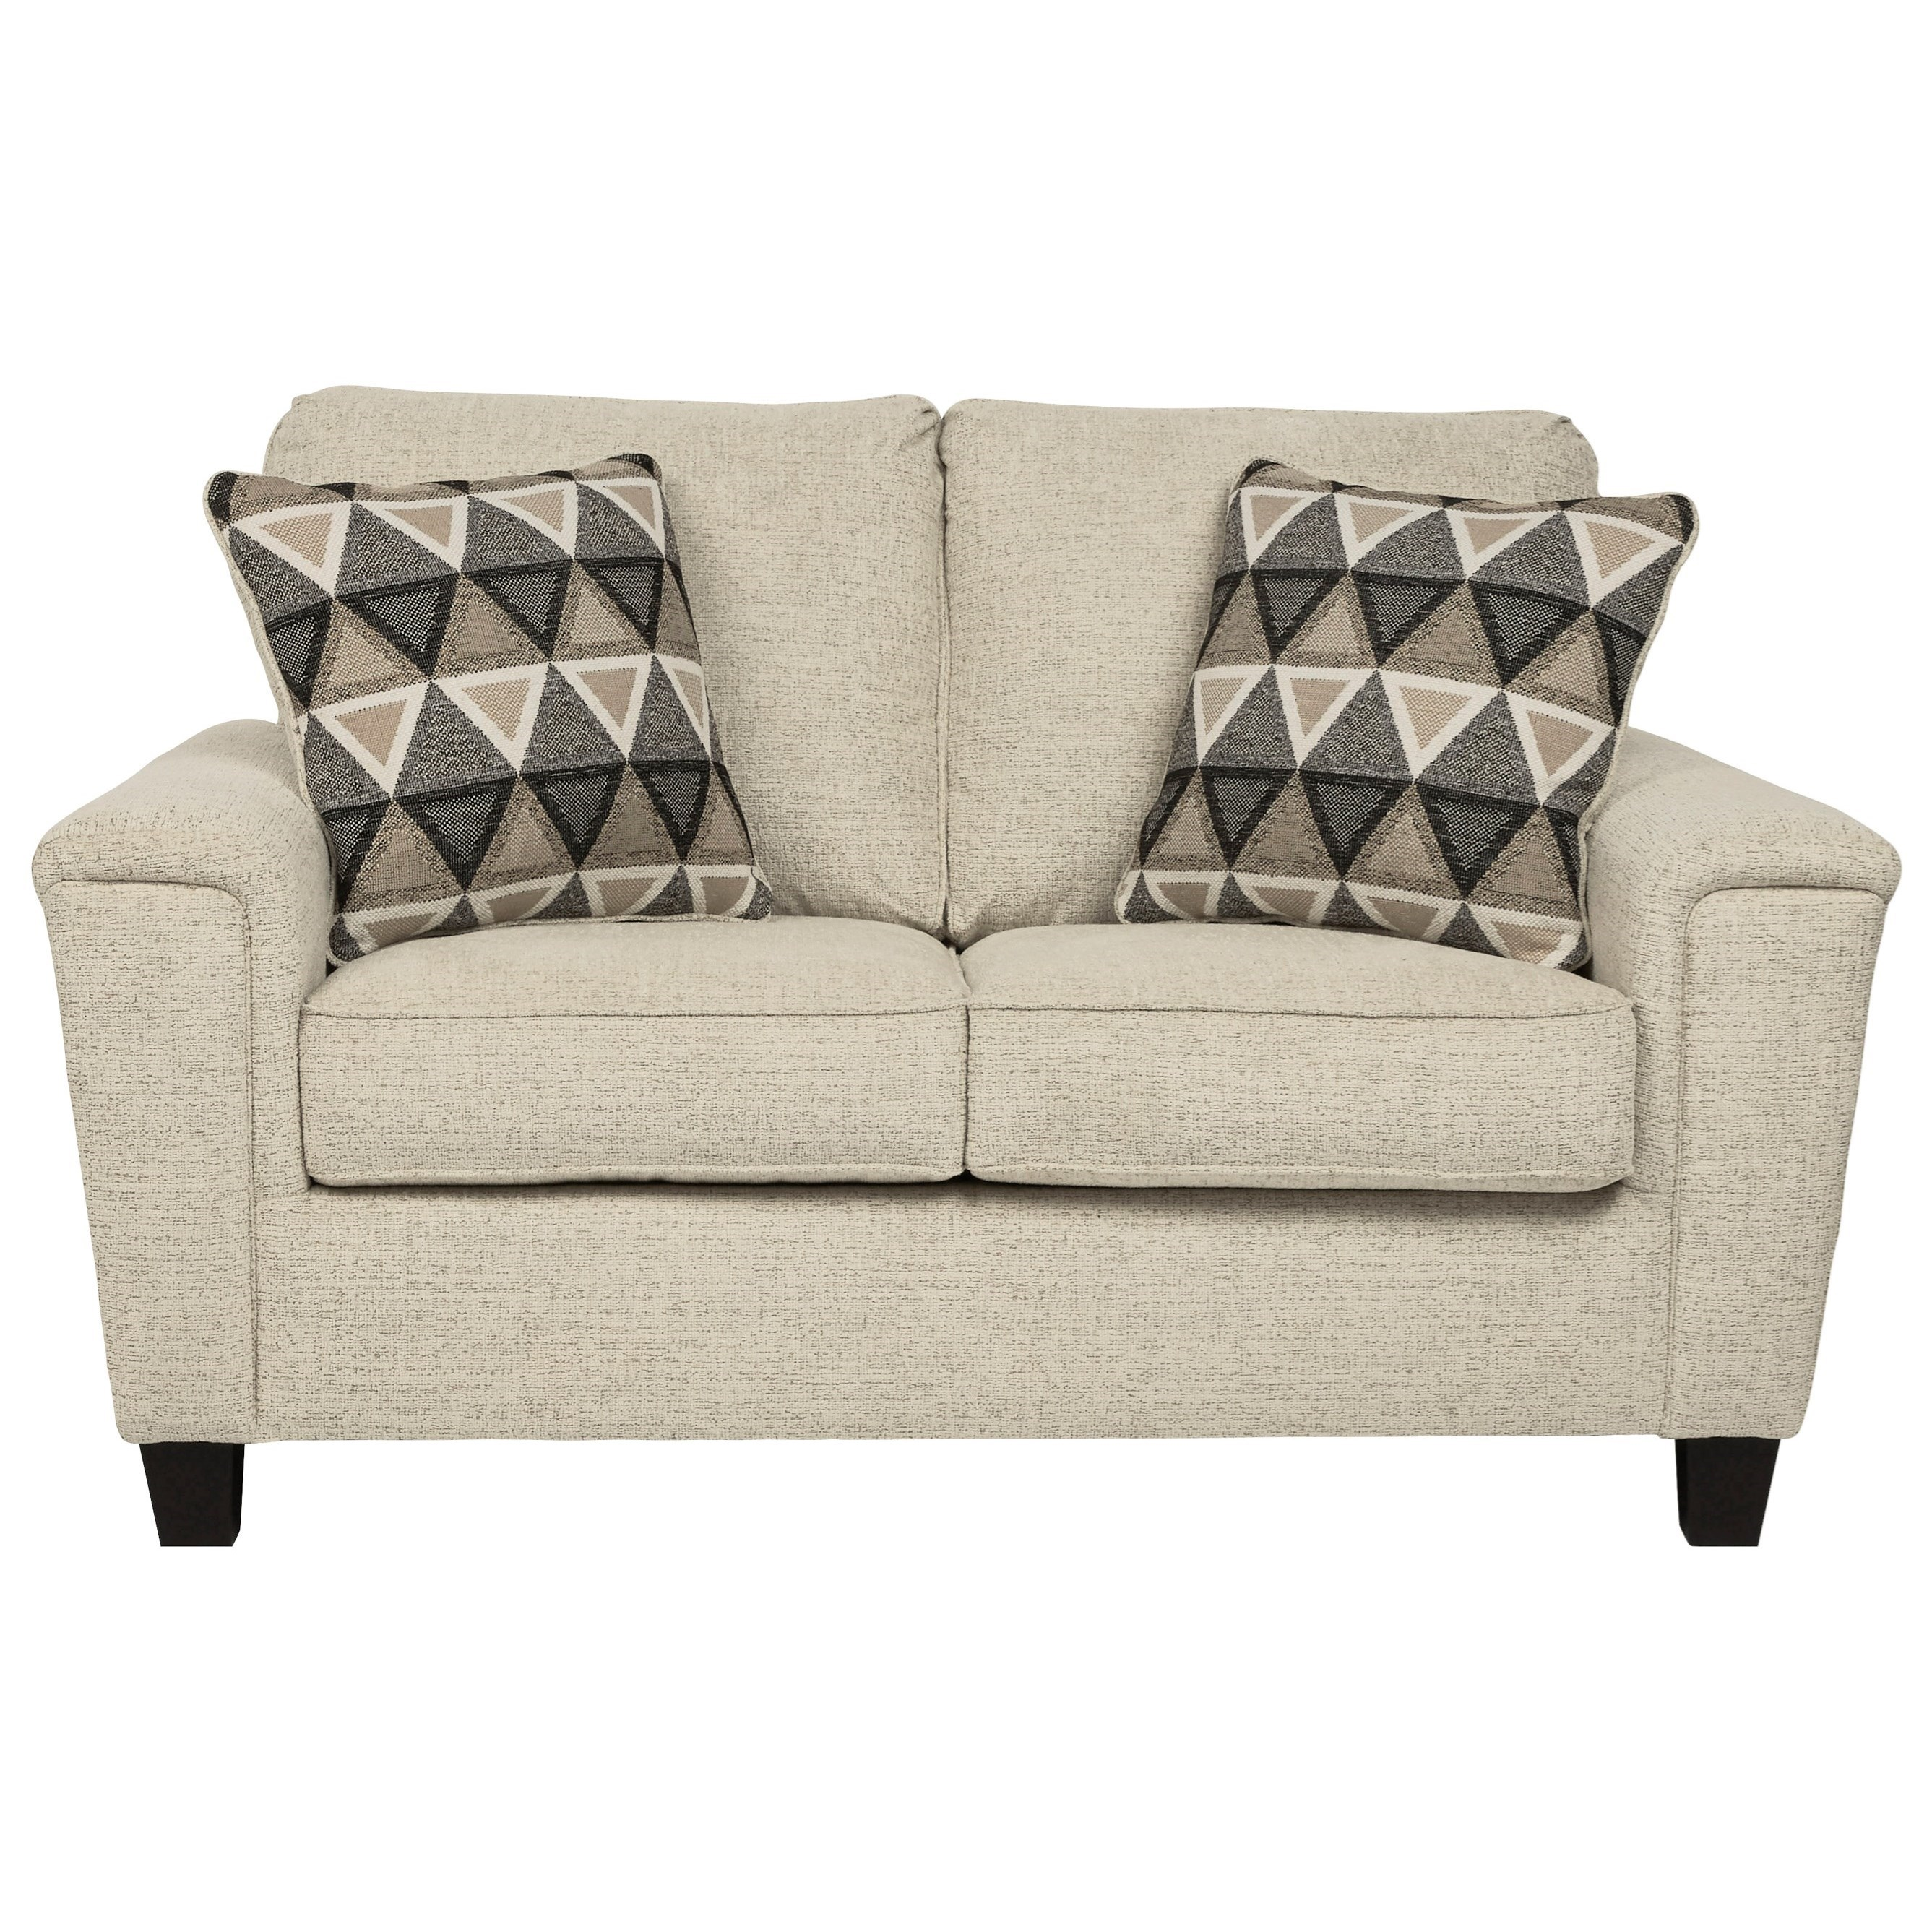 Abinger Loveseat by Signature Design by Ashley at Pilgrim Furniture City